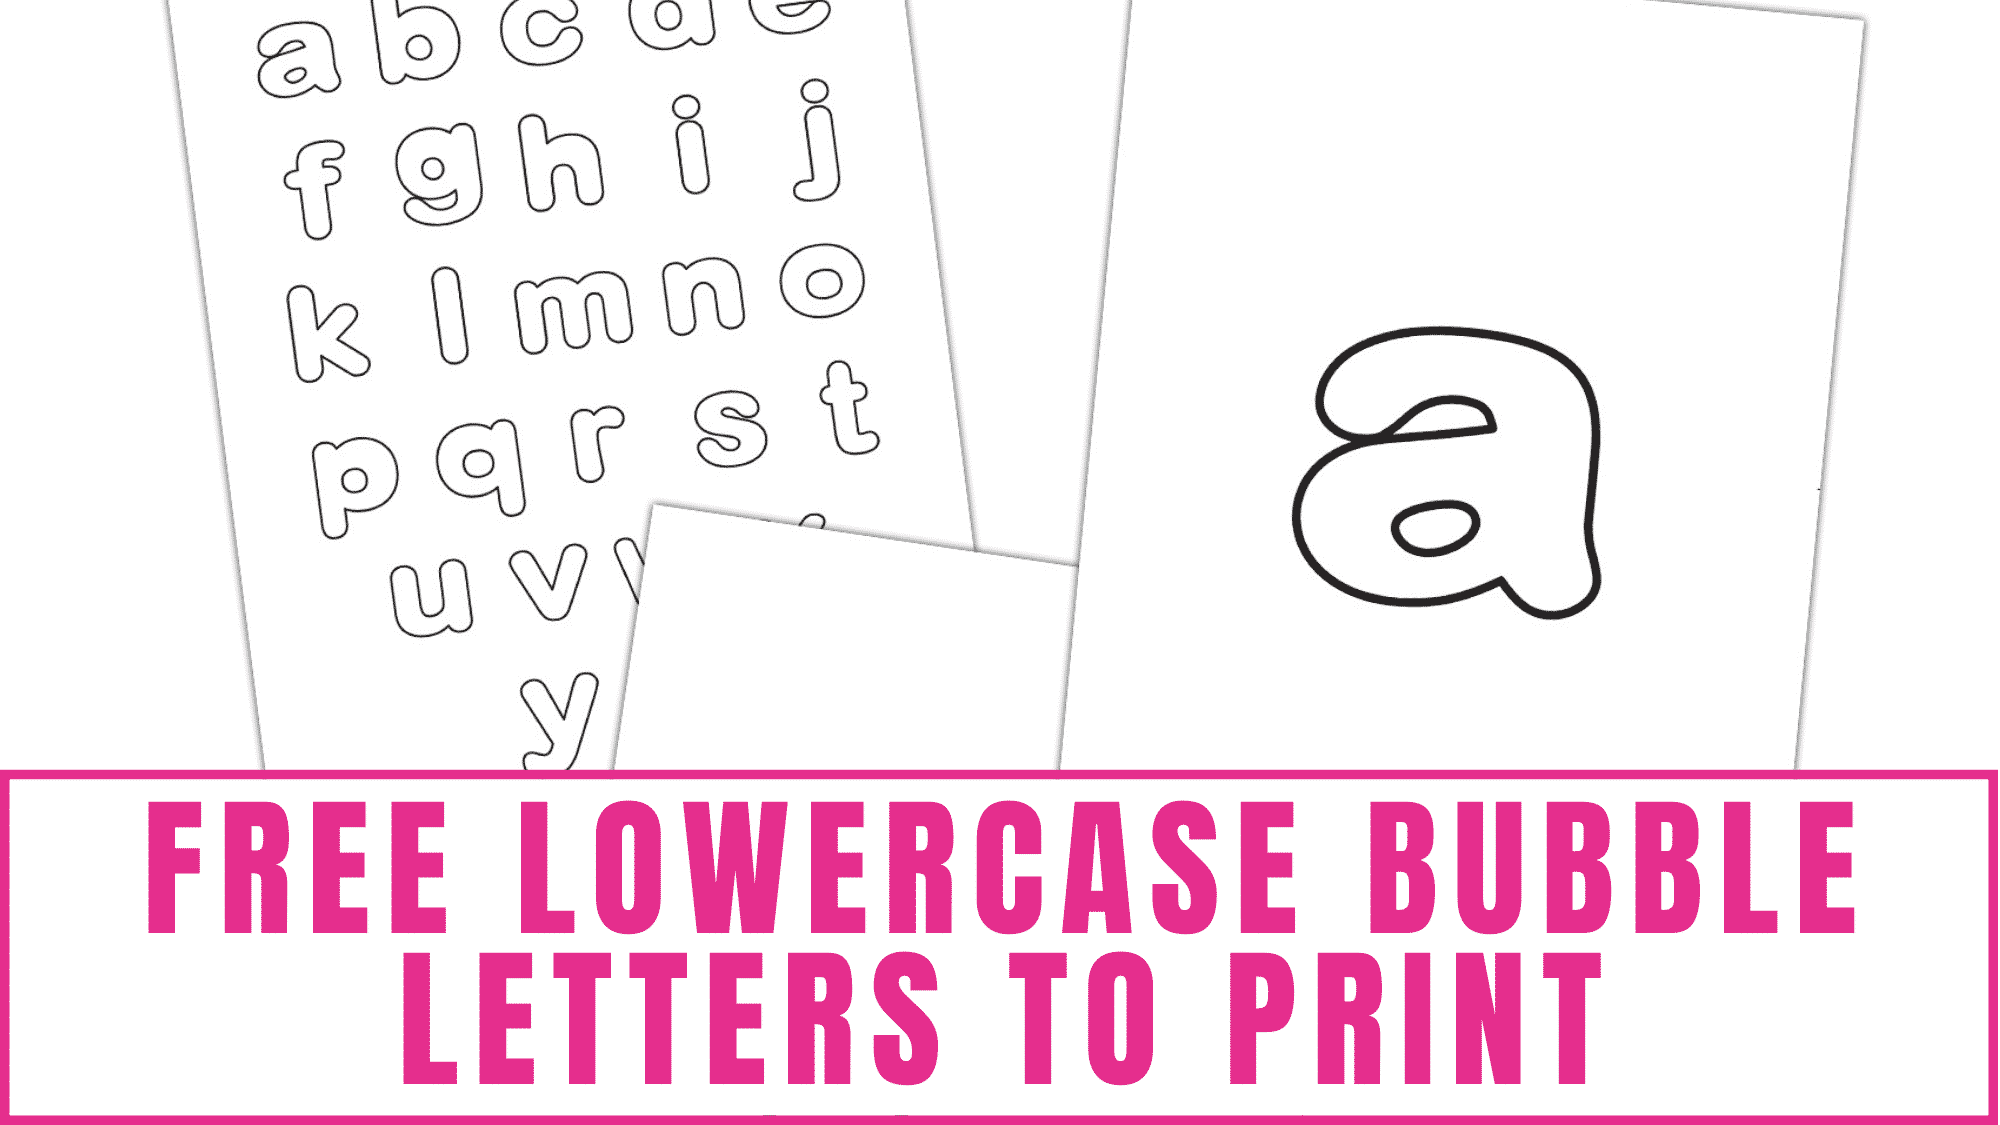 From educational activities to craft projects, the uses for these free lowercase bubble letters are practically endless!